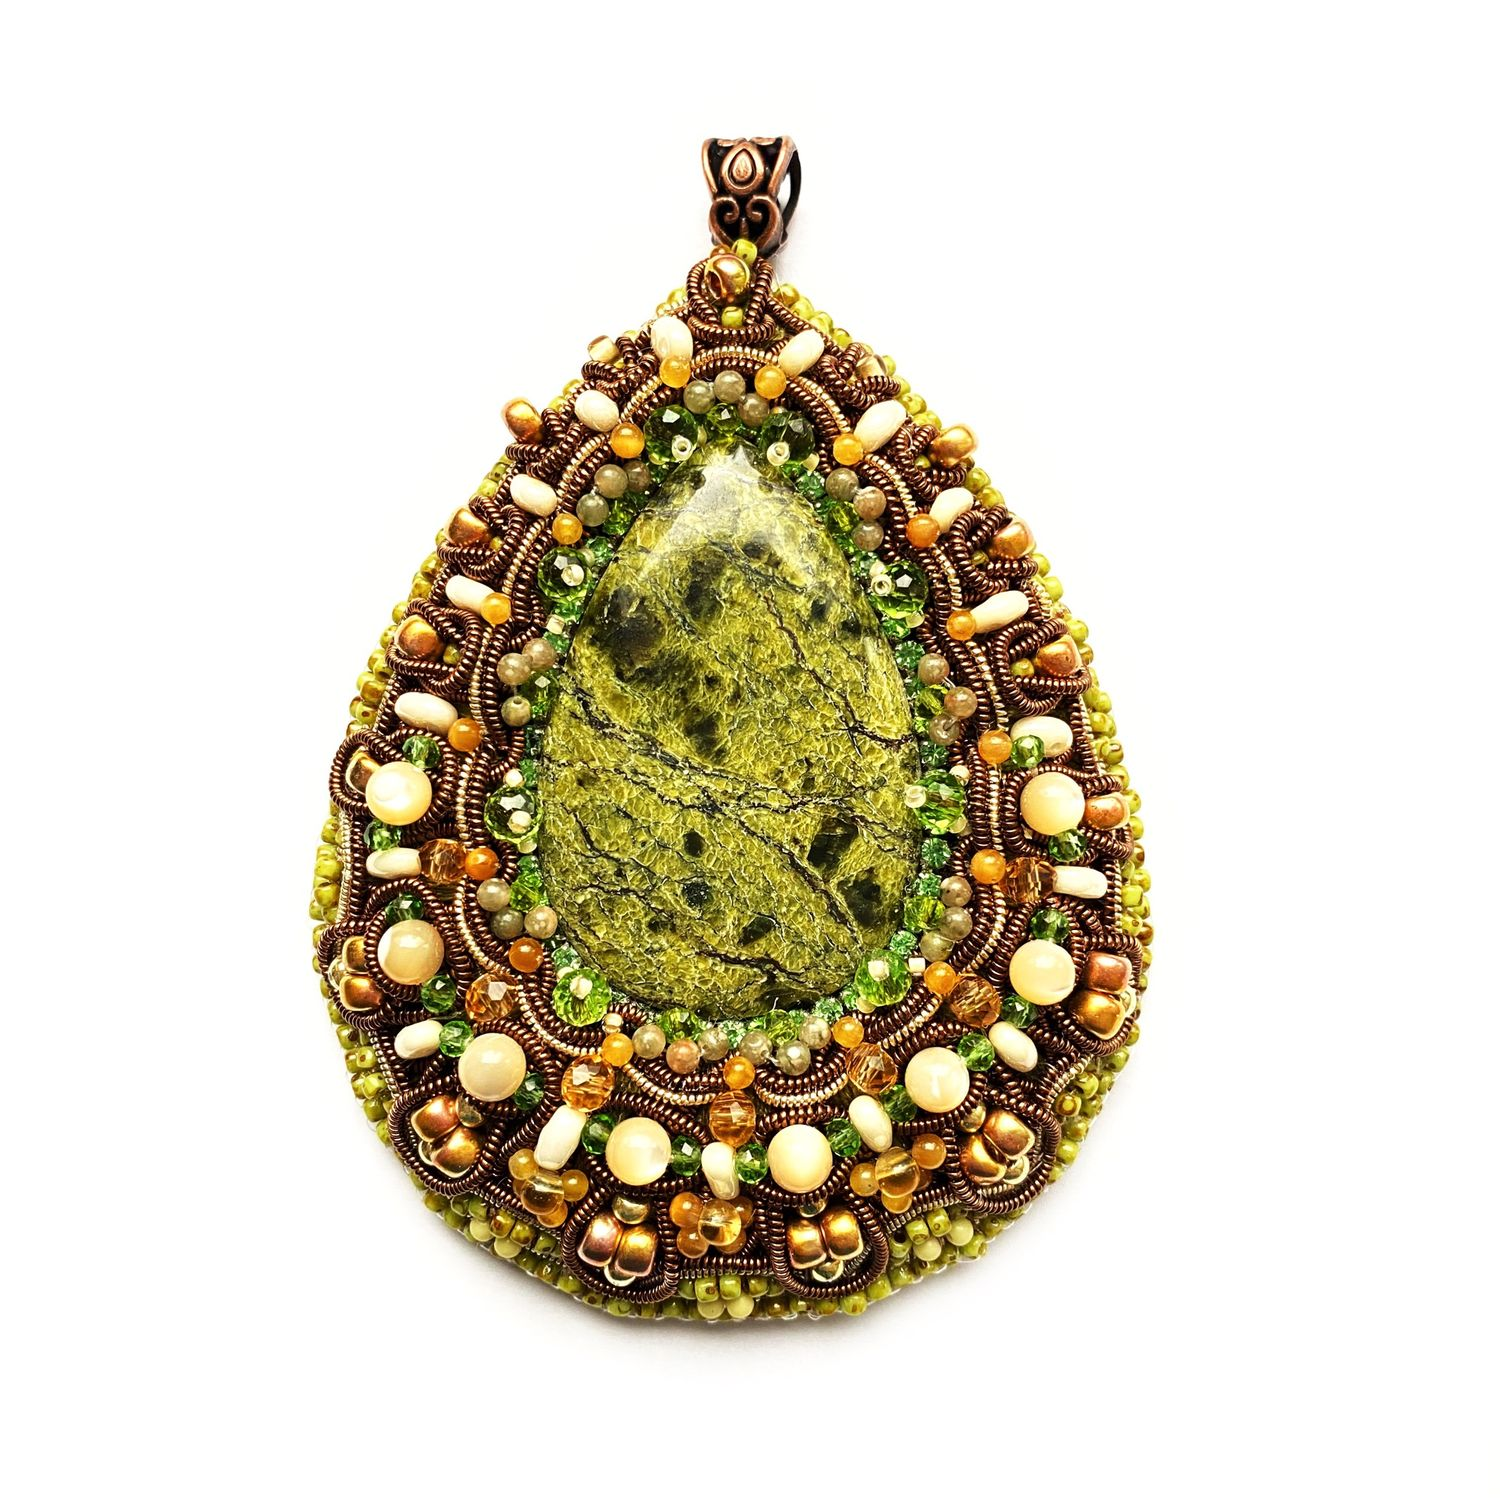 pendant, pendant decoration made of natural stone mistress of the copper mountain, Pendants, Moscow,  Фото №1